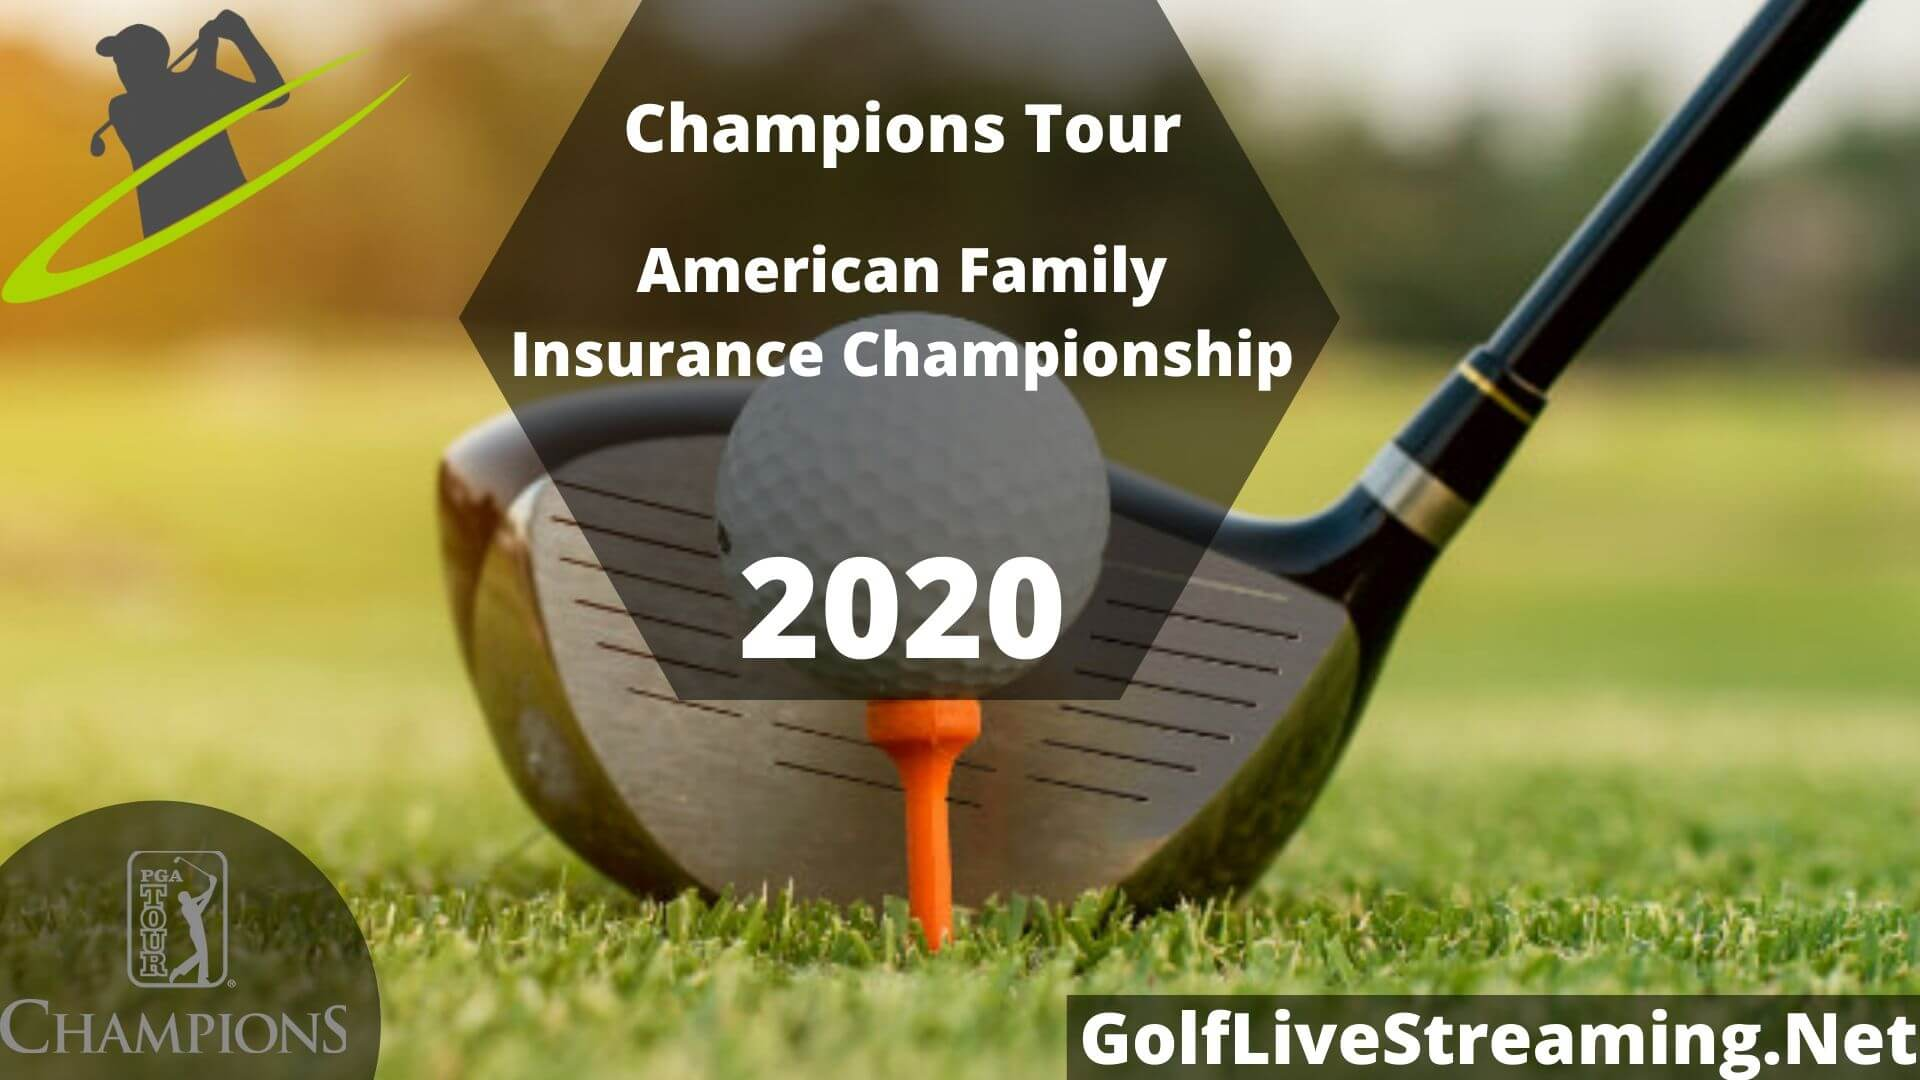 American Family Insurance Championship Live Stream 2020 | Champions Tour Round 3